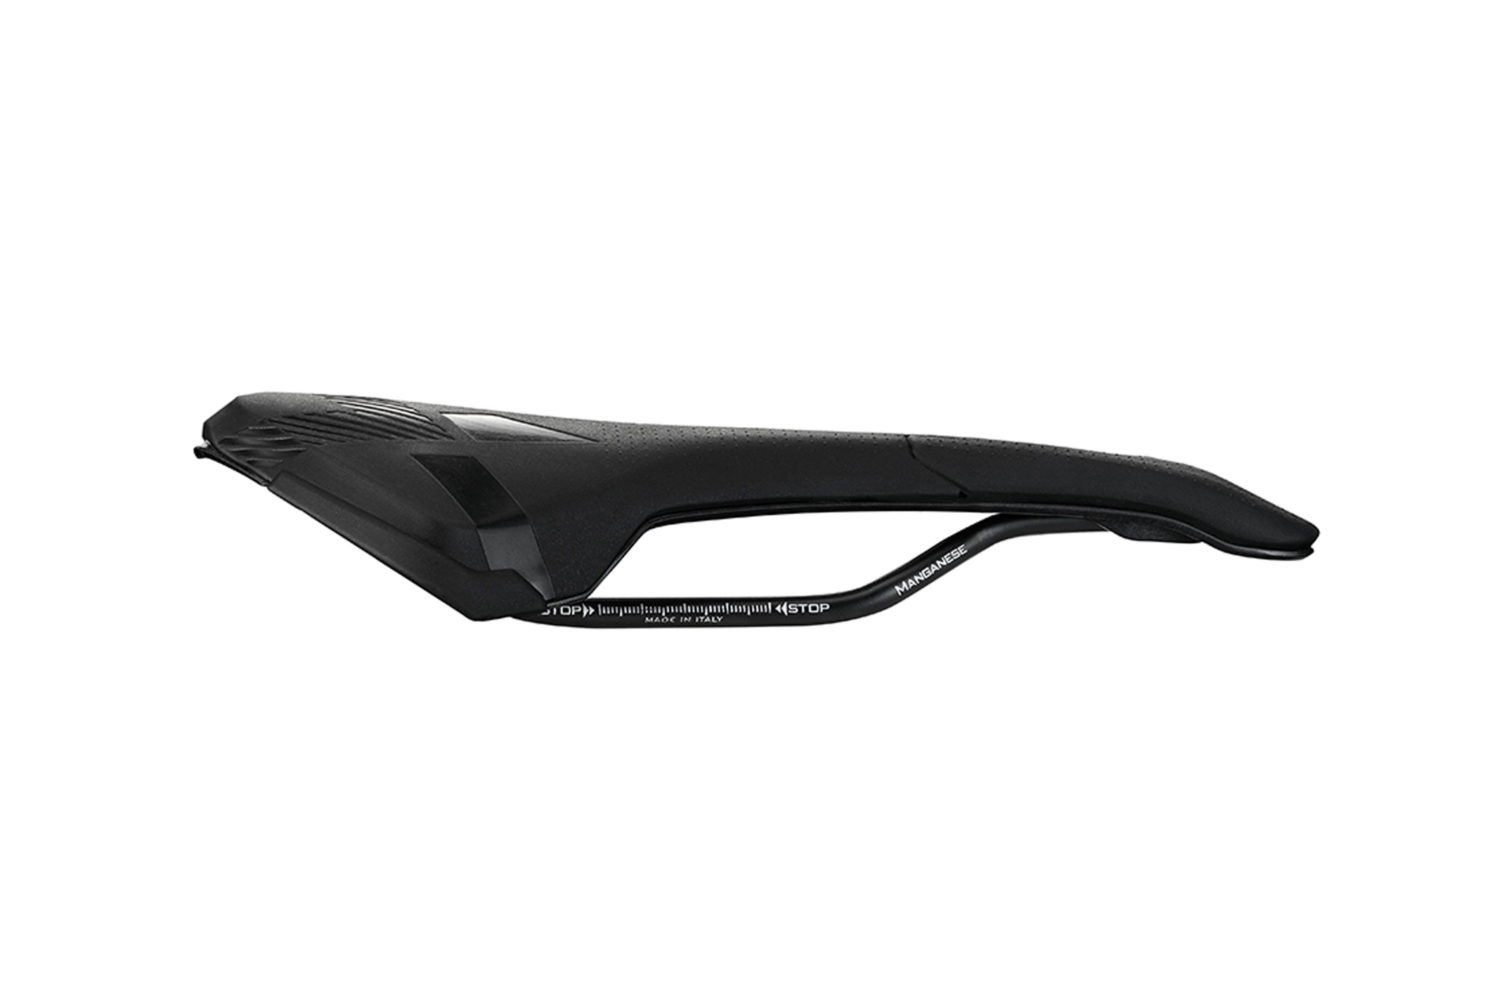 SJEDALO SELLE ITALIA X-LR TM AIR CROSS SF S MN AM